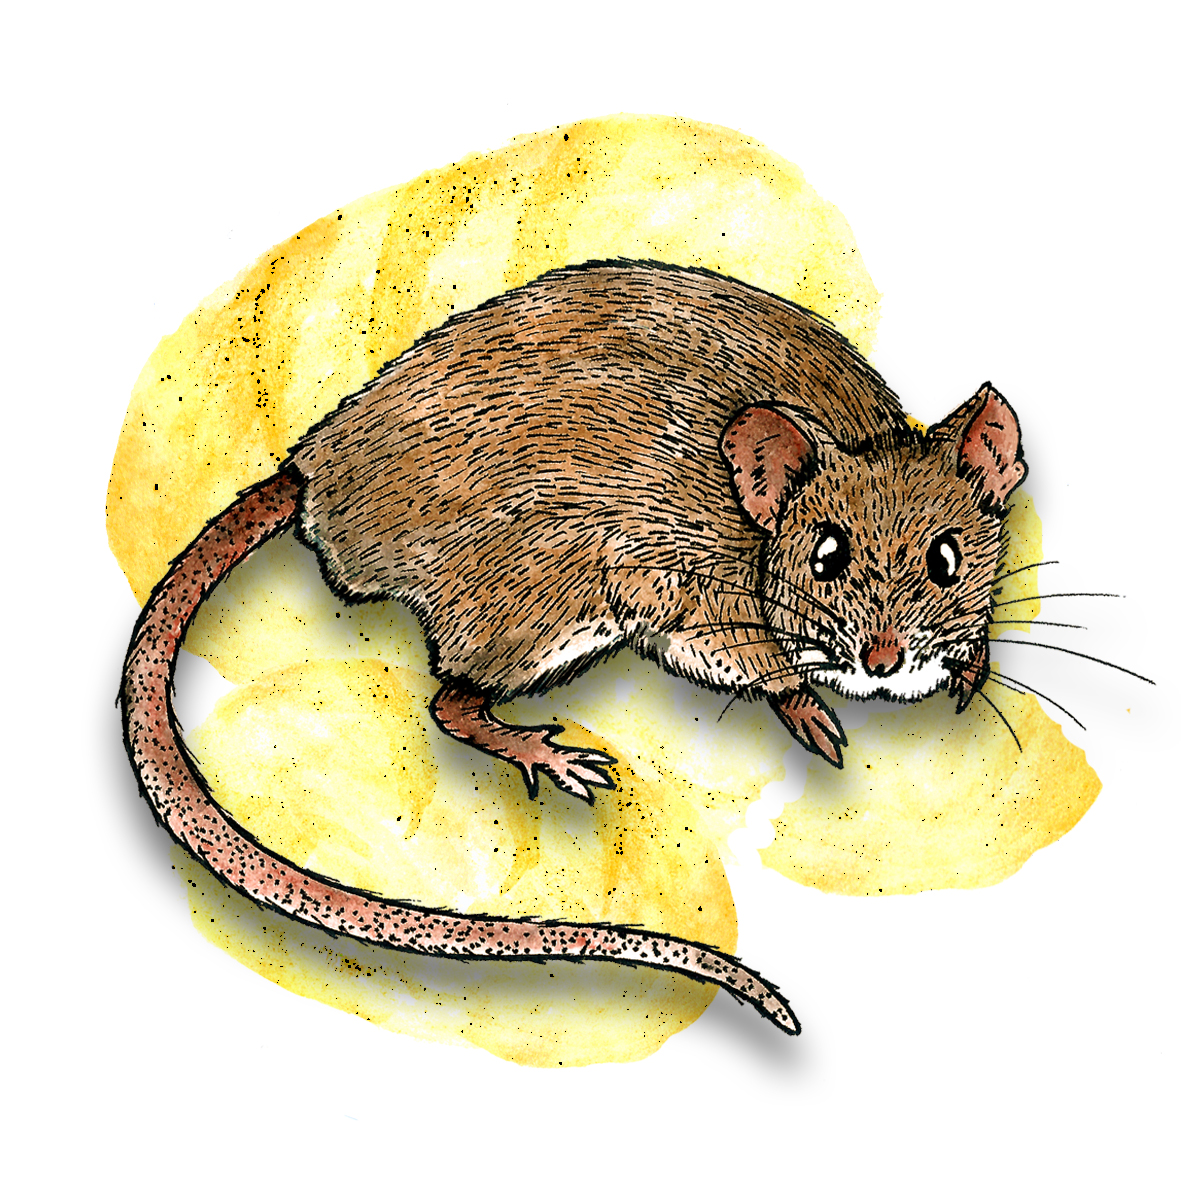 8. House Mouse